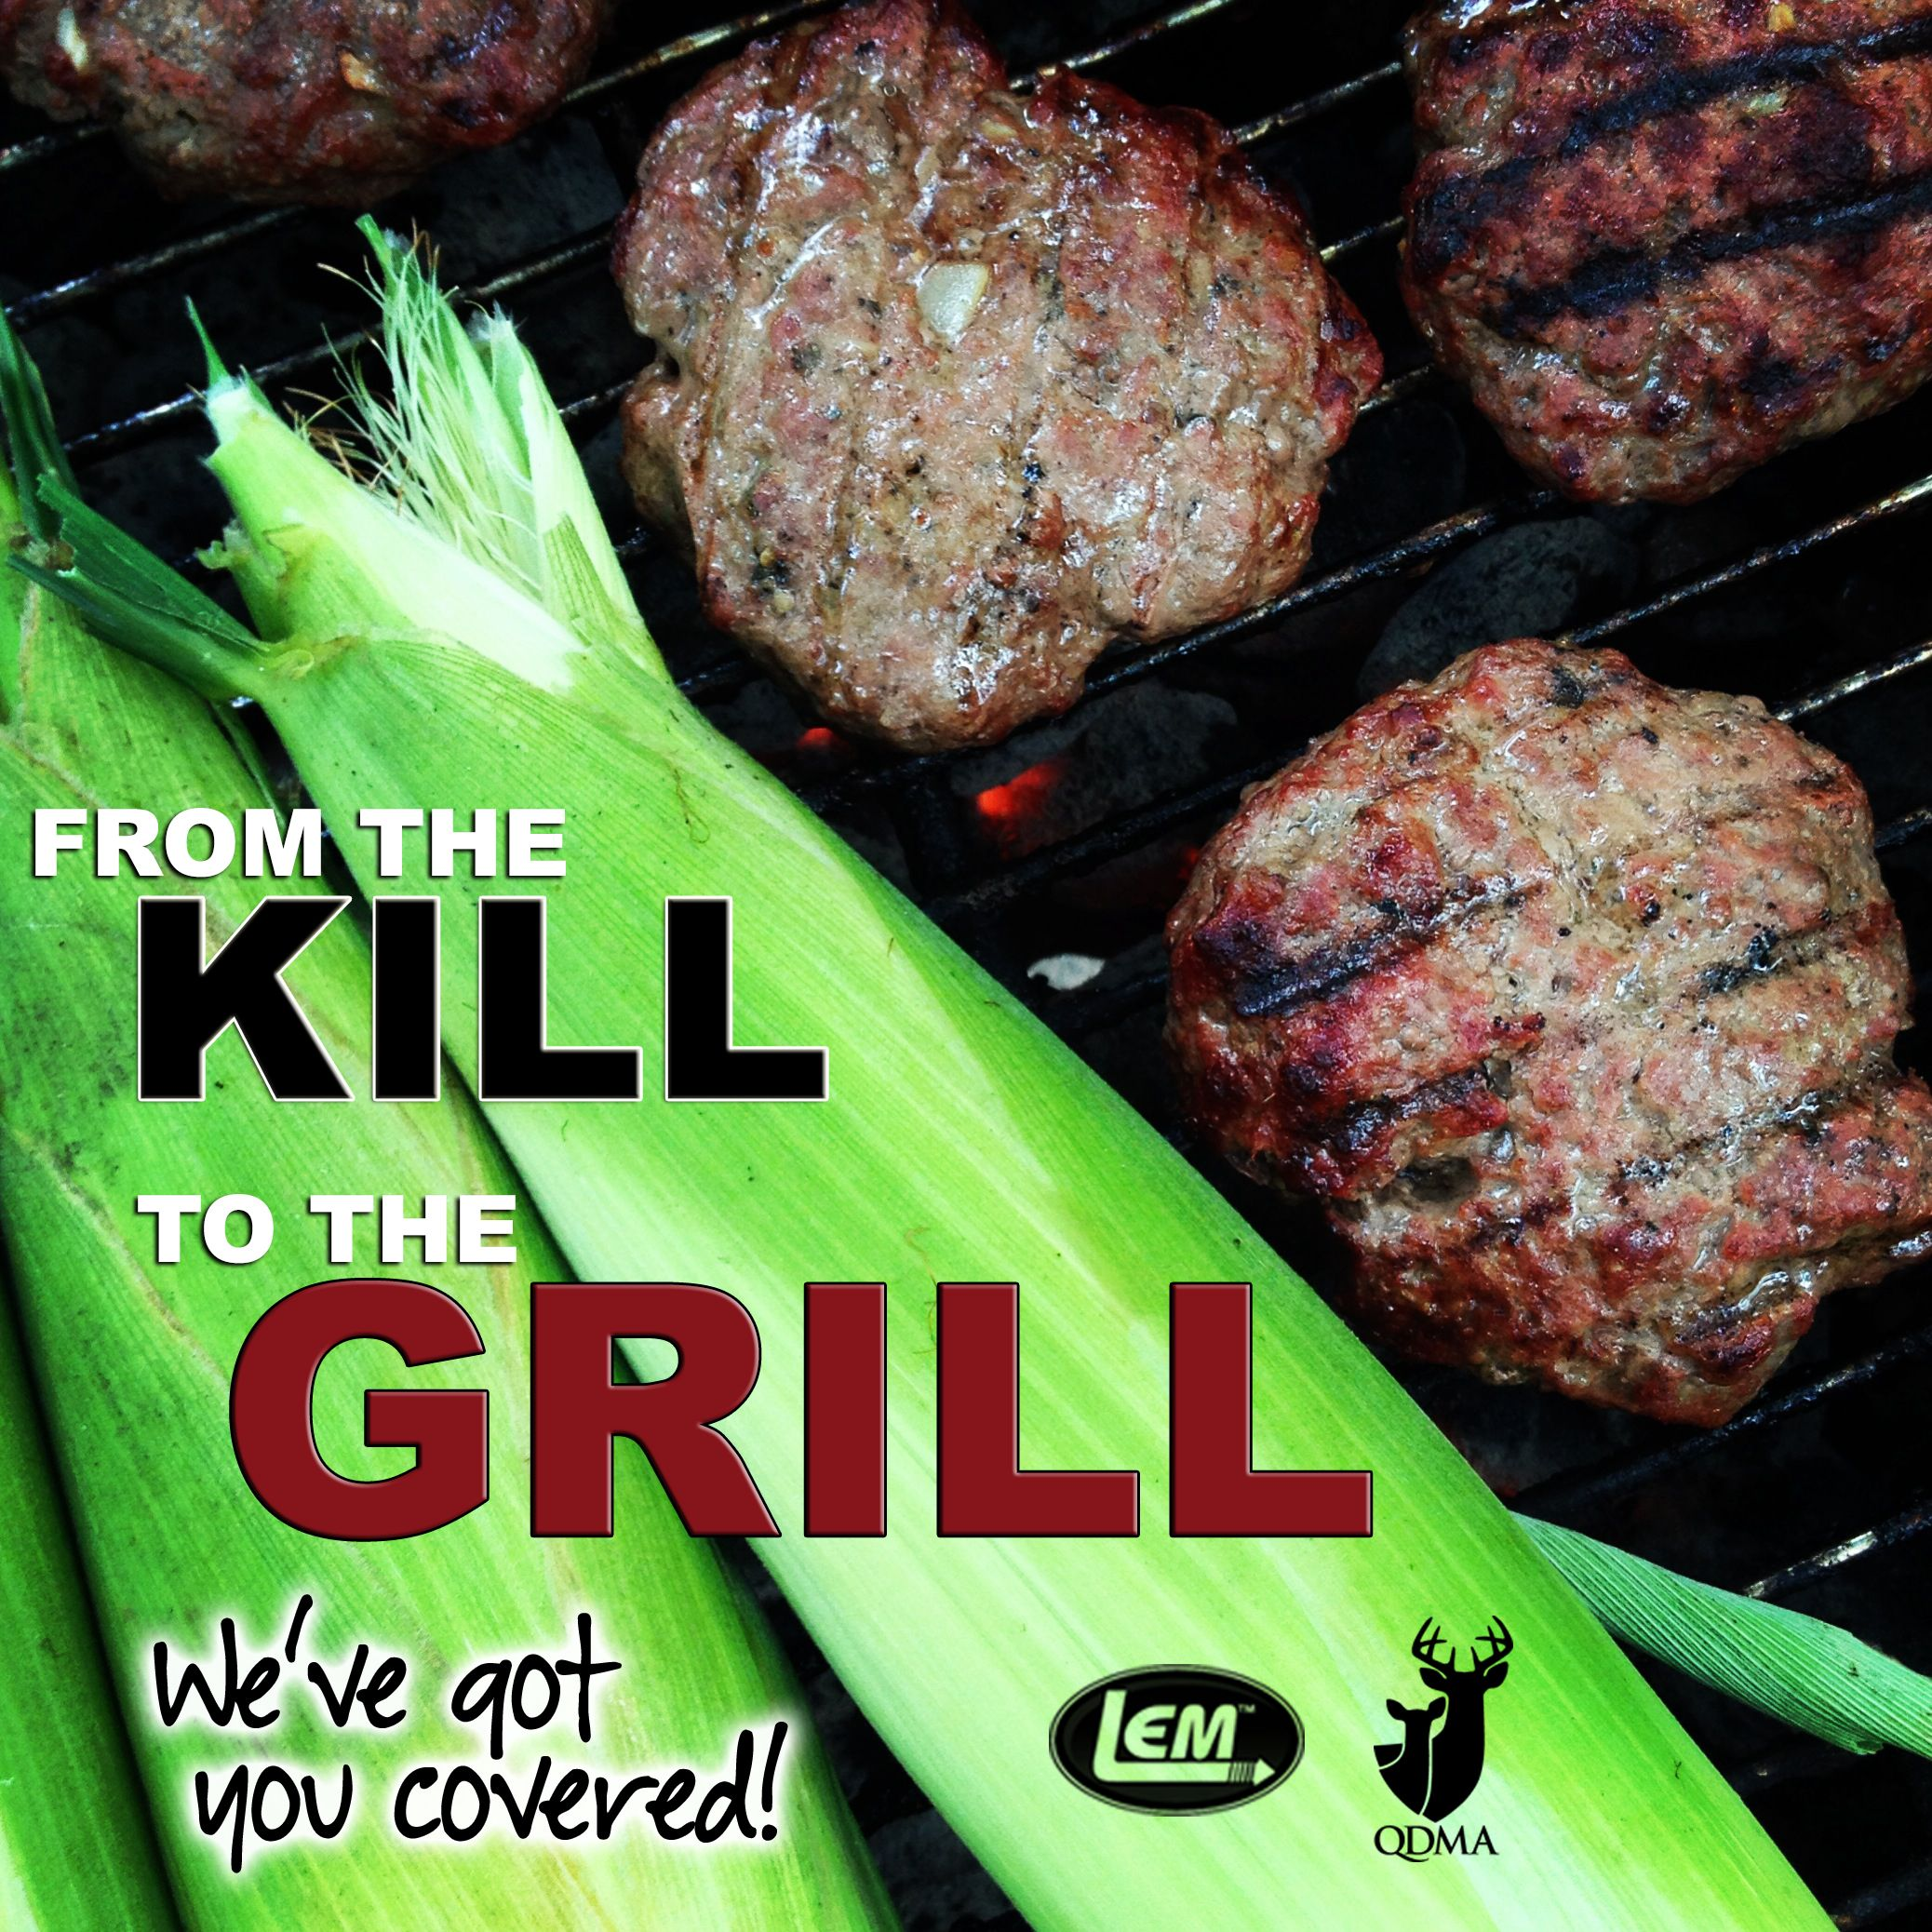 From the kill to the grill weve got you covered lem